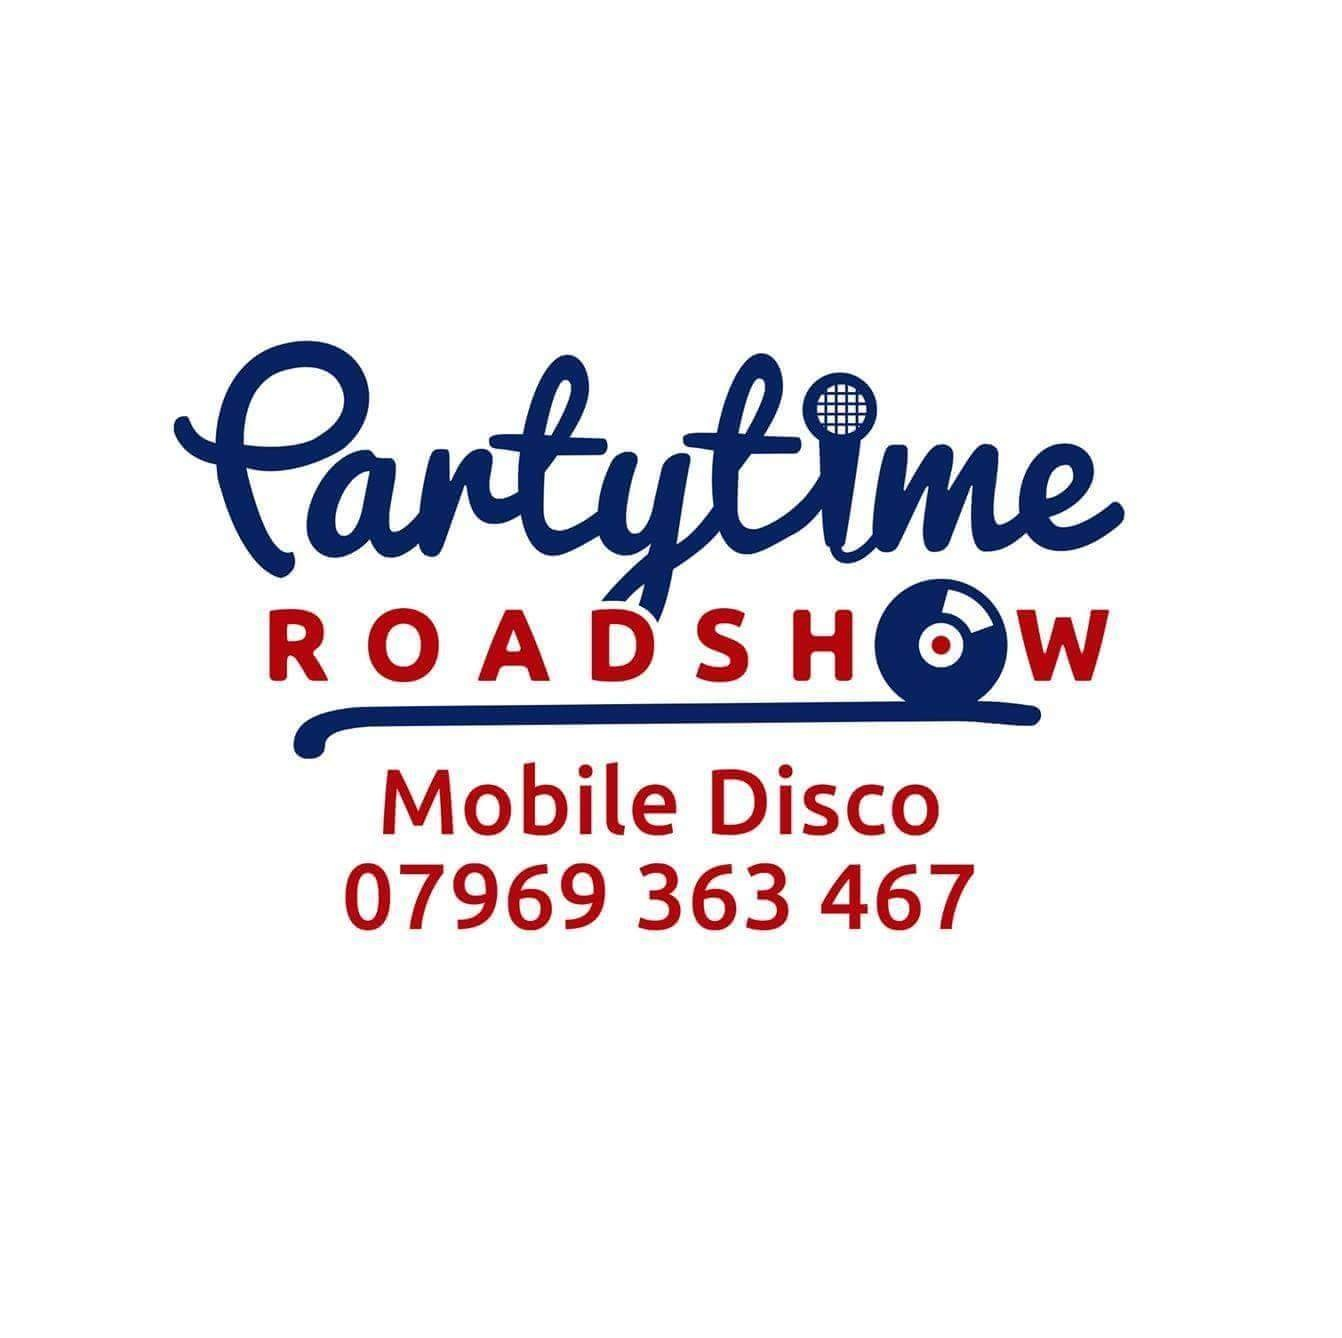 Party Time Roadshow Mobile Disco